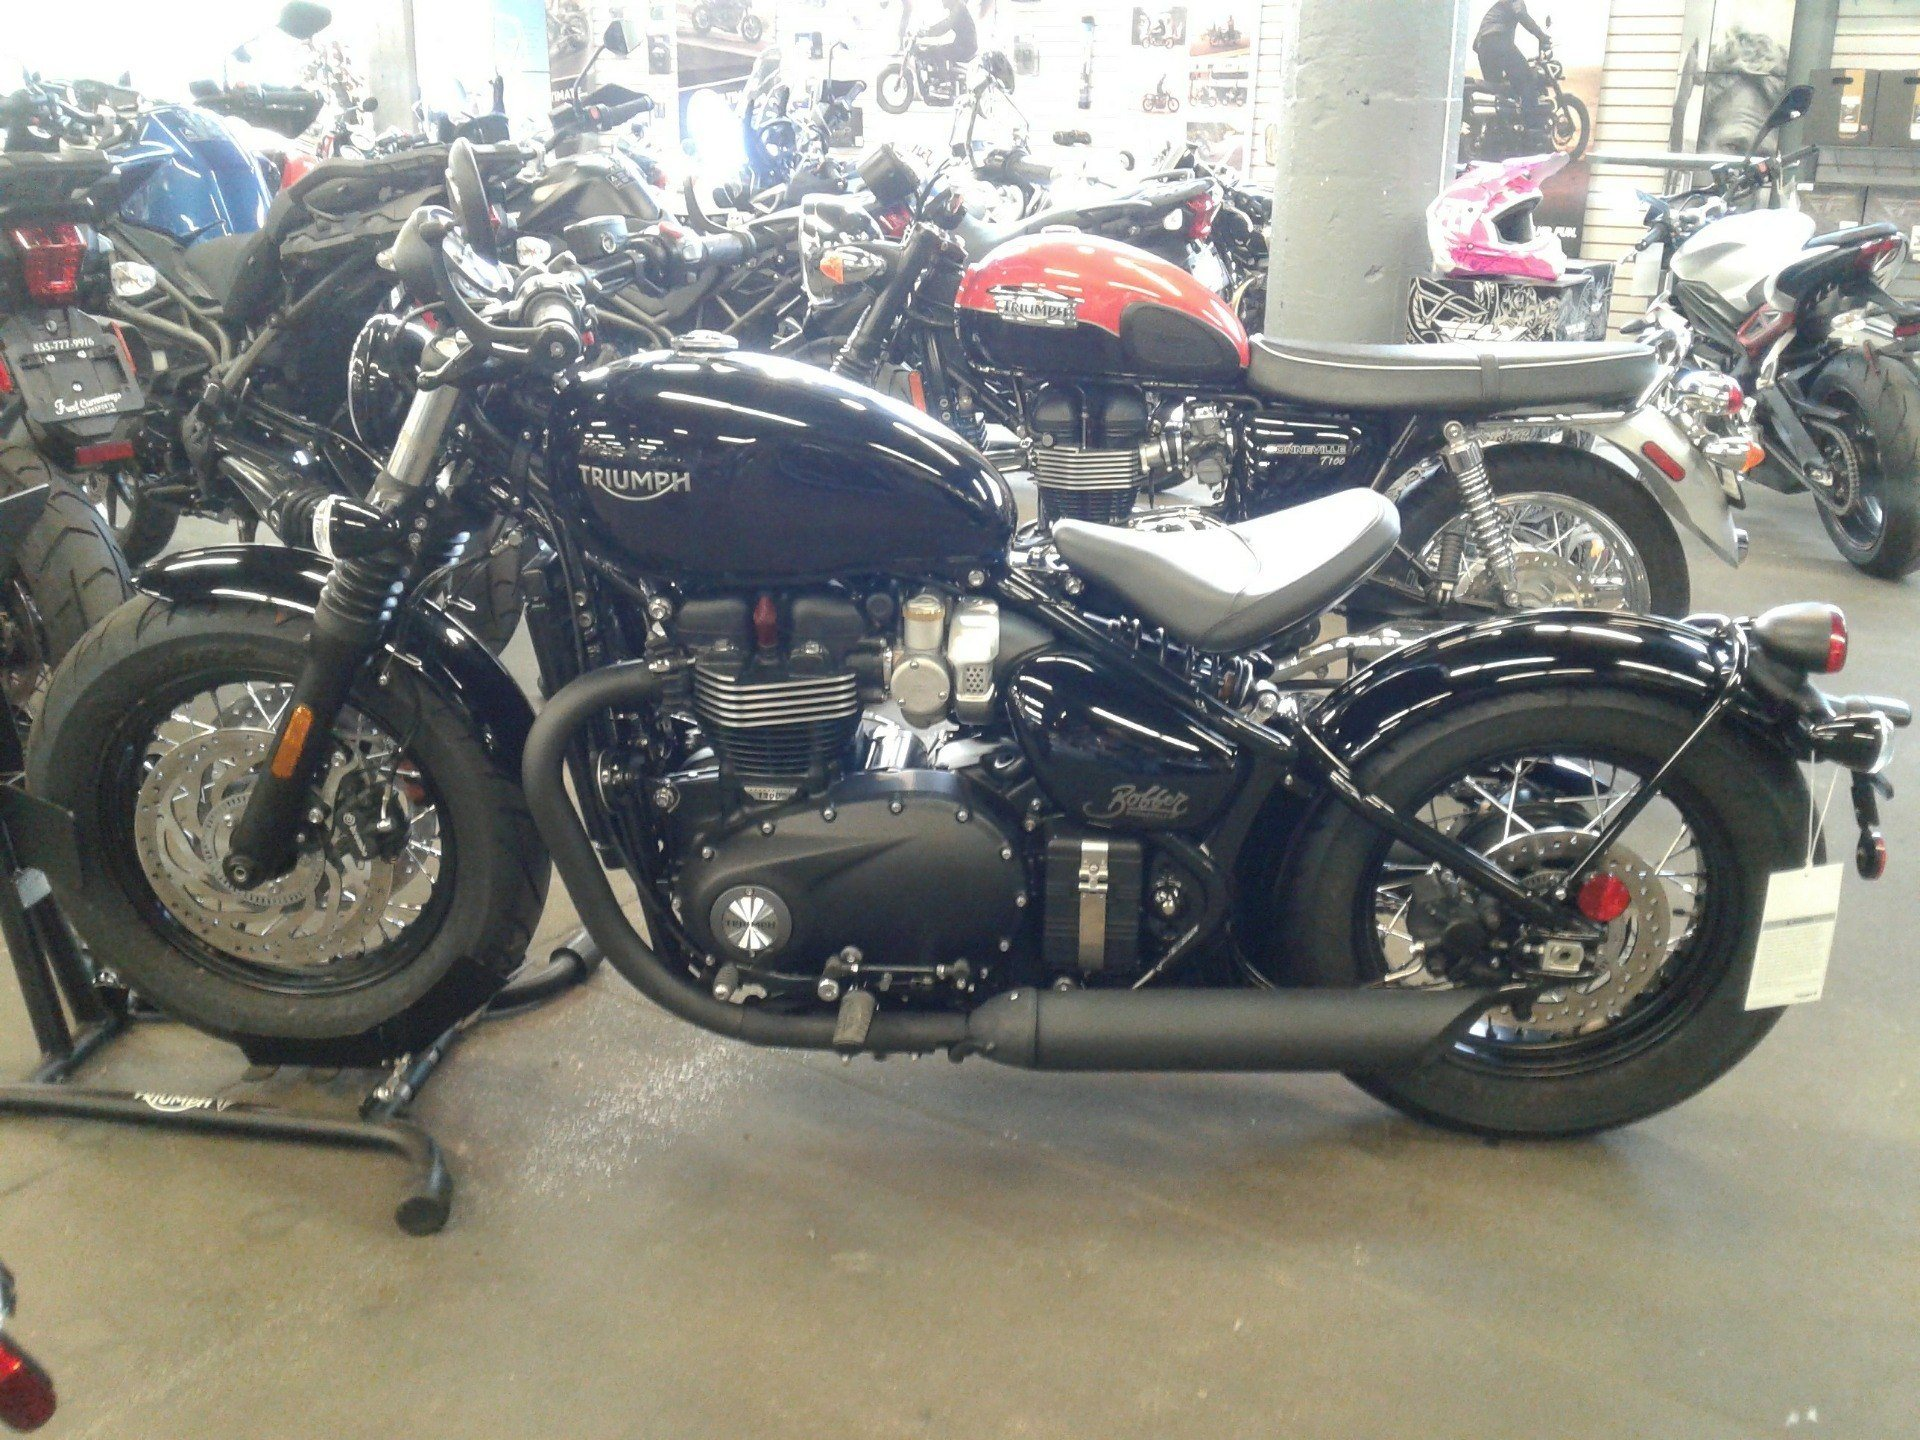 2019 Triumph Bonneville Bobber Black in Bakersfield, California - Photo 1